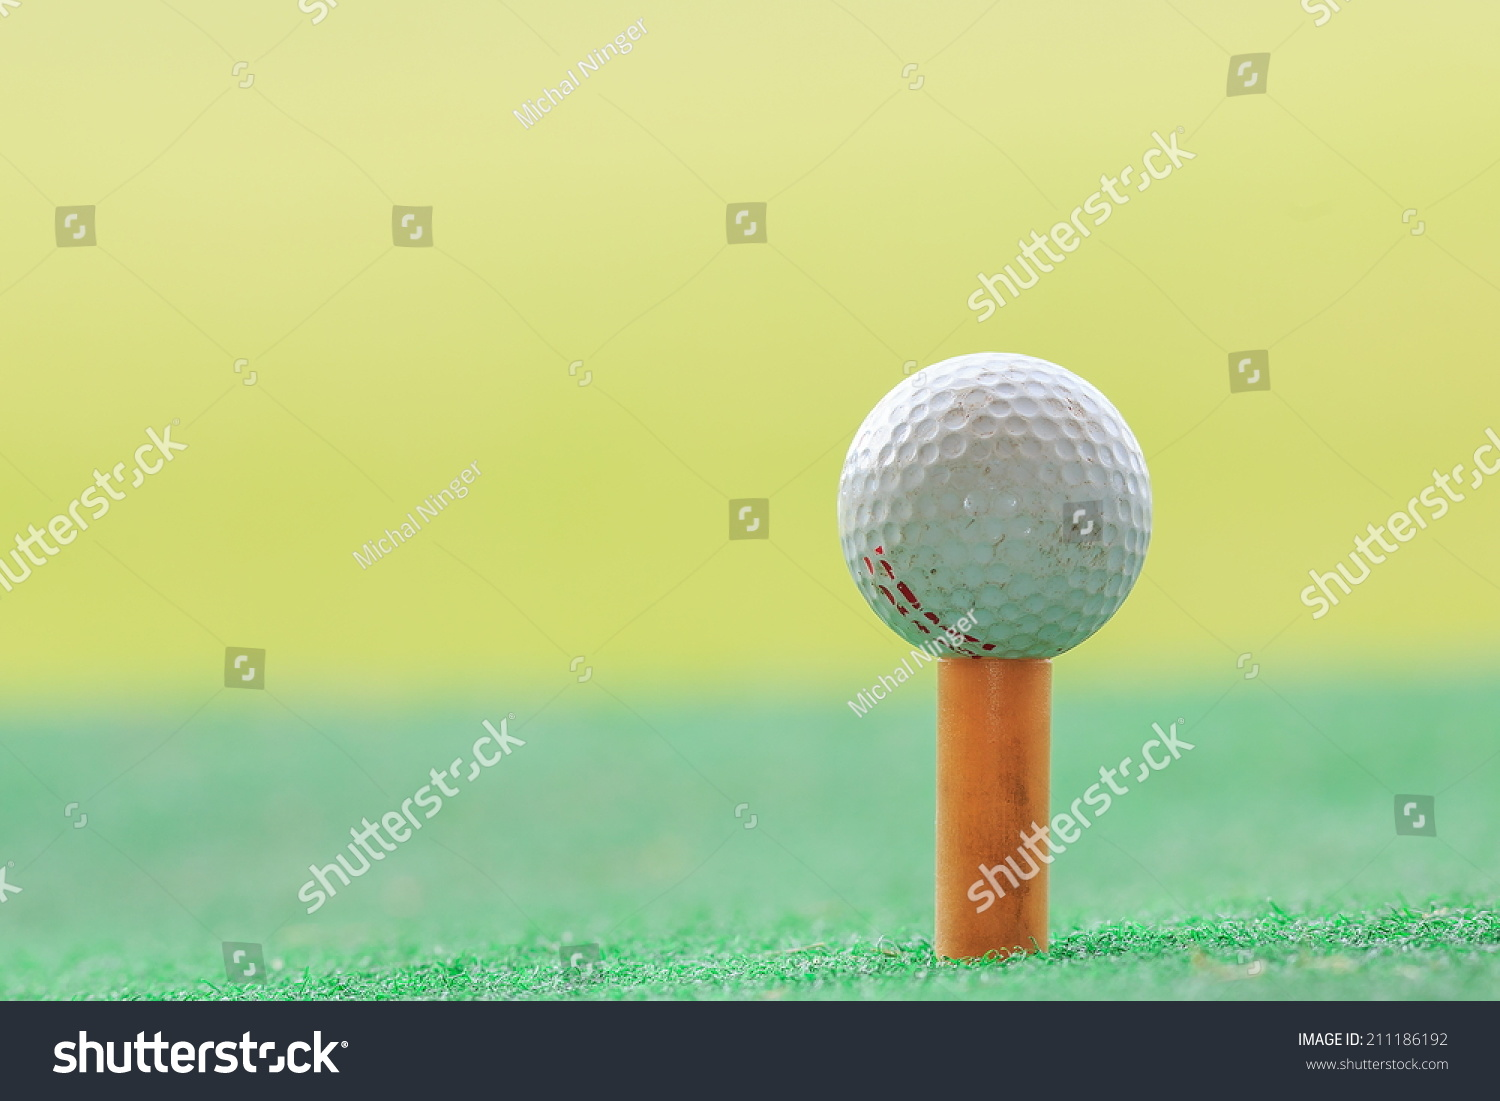 detail of a golf ball on a tee